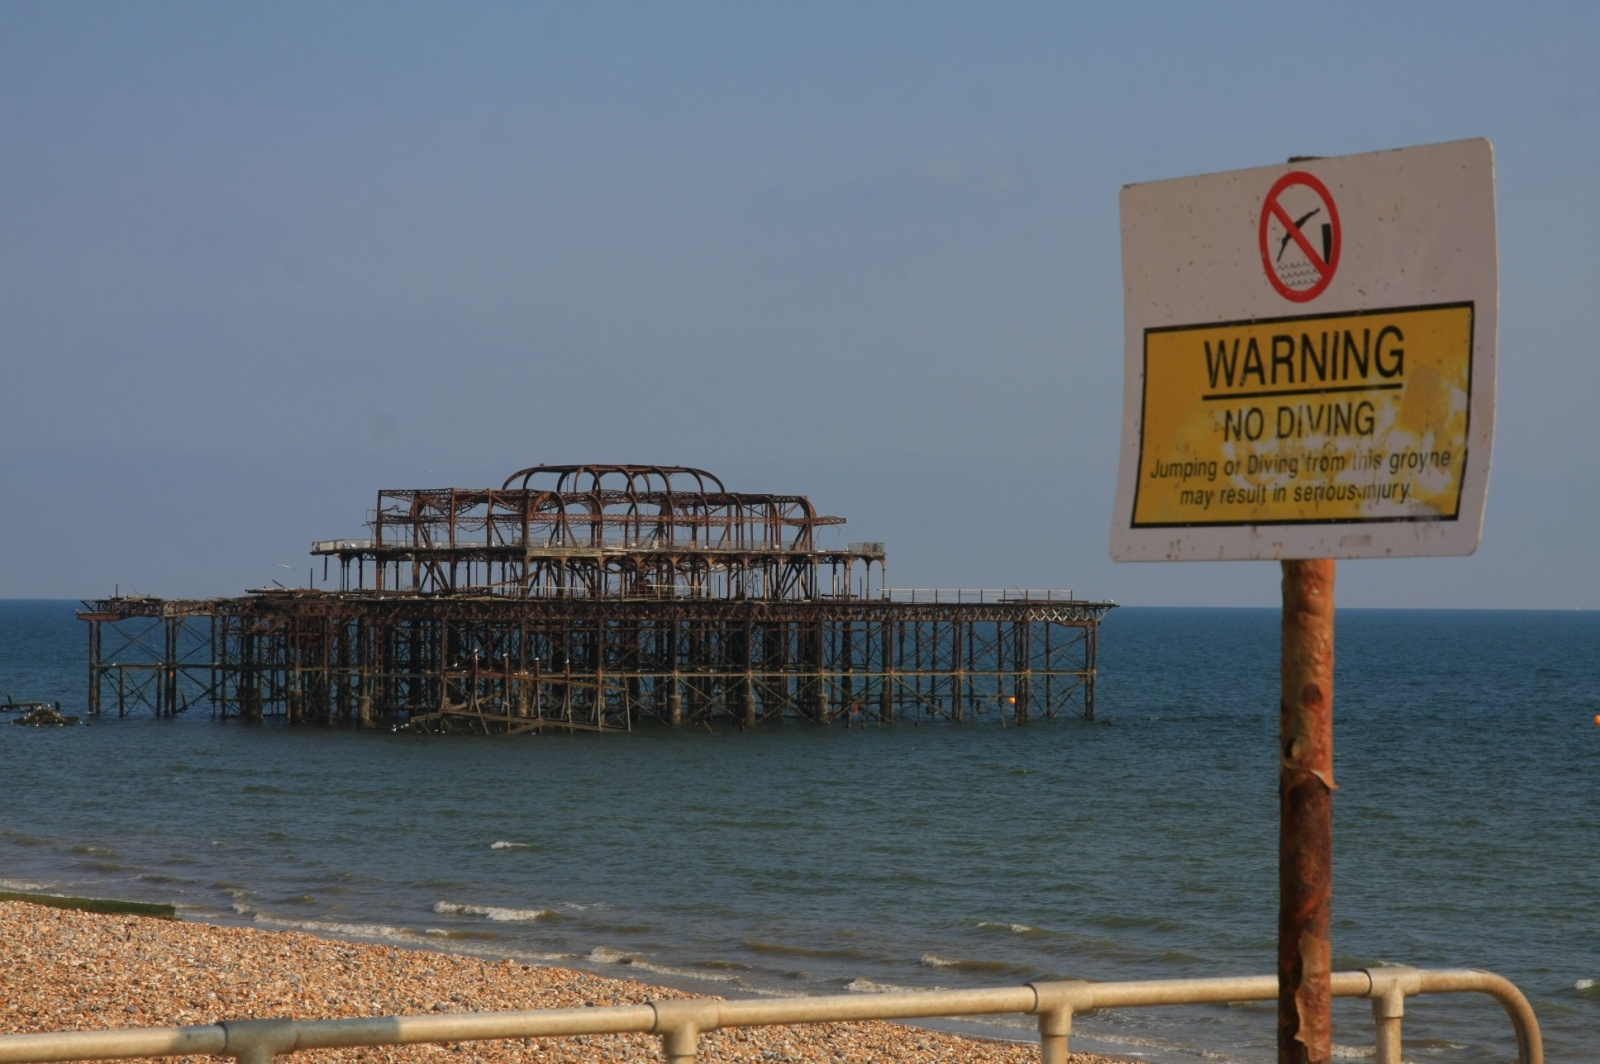 Burned down west pier